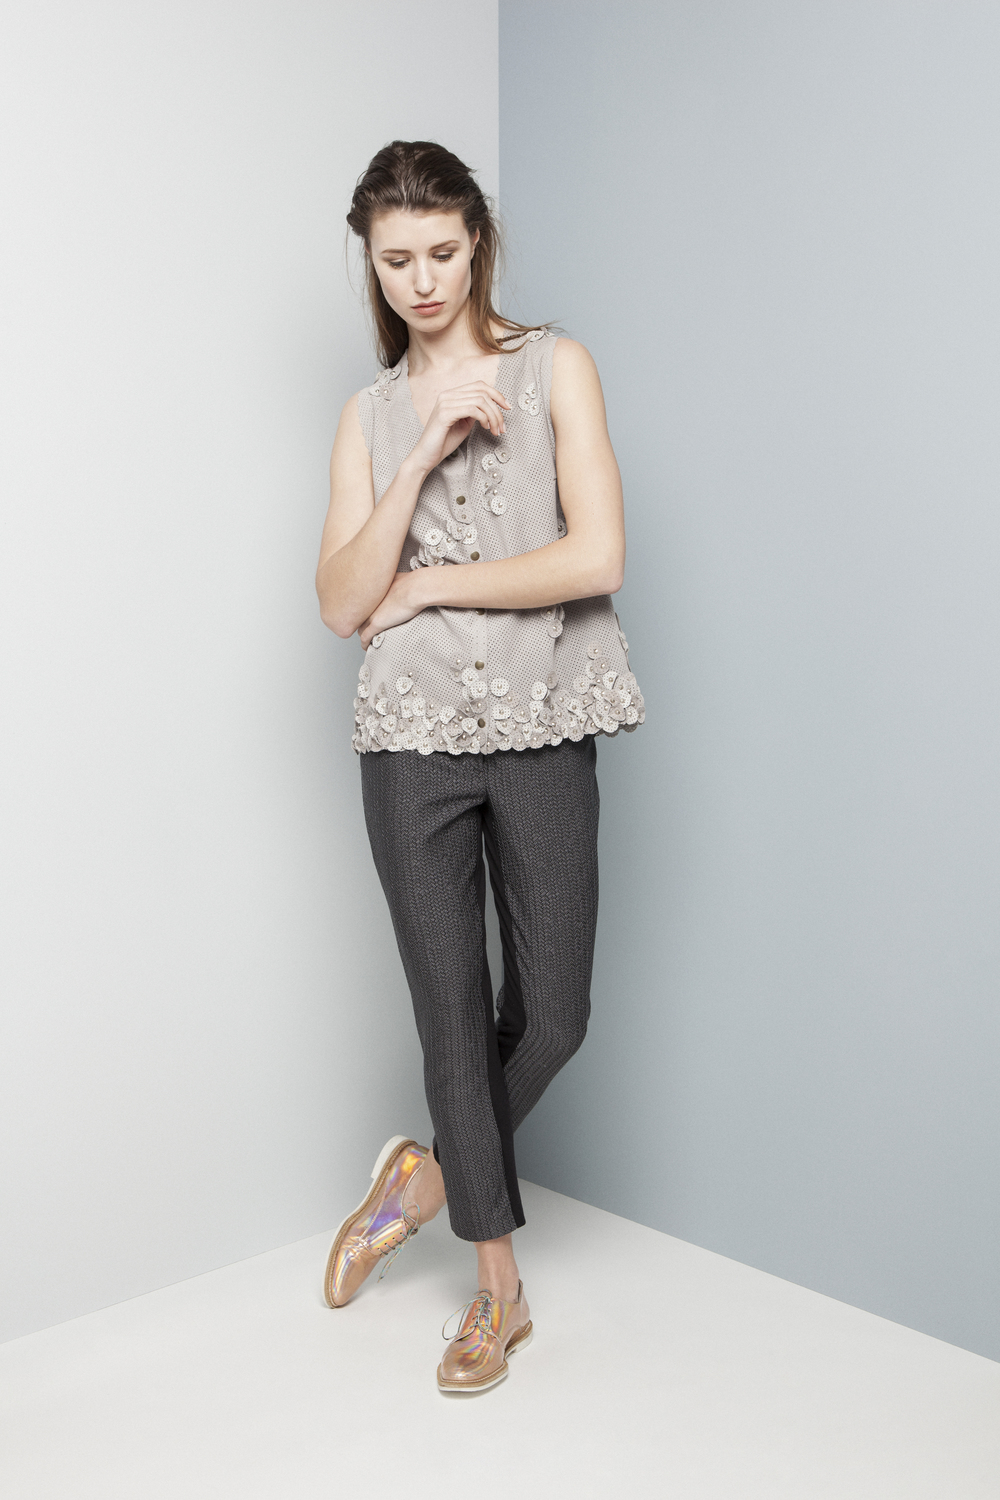 Manley AW14 Elsie Perforated Top (slate) €429 and Rylie Pants €275.jpg